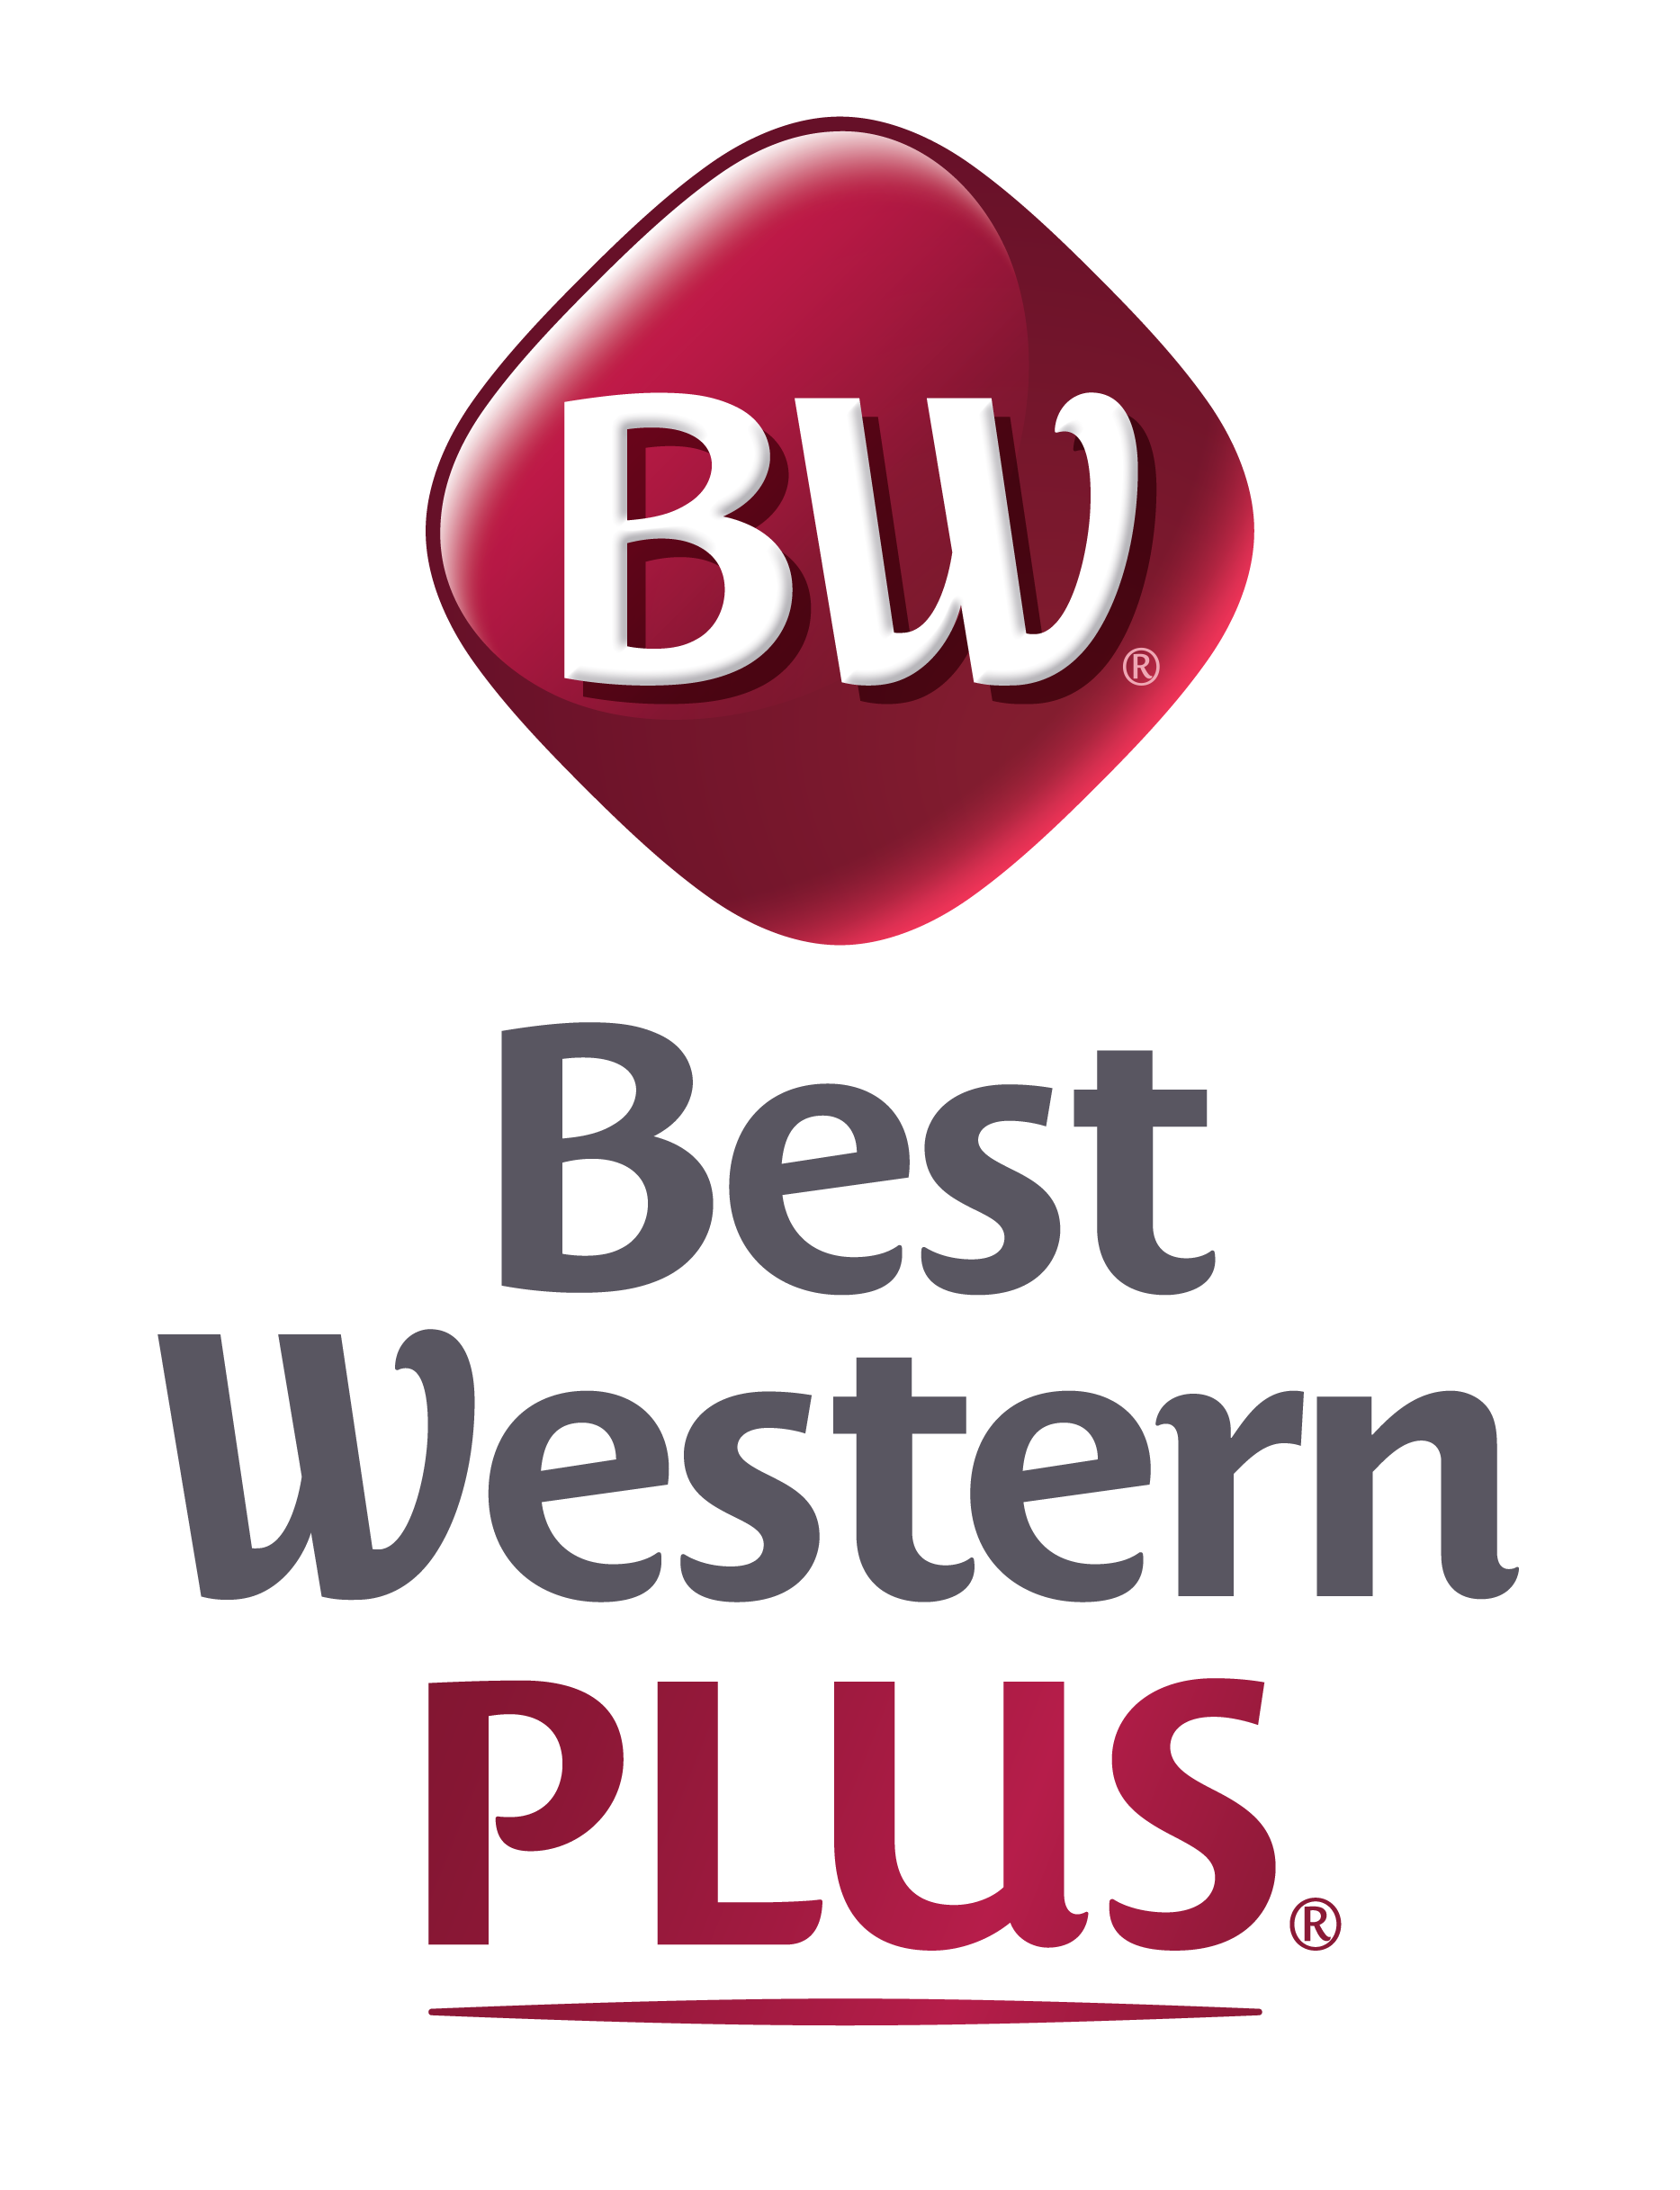 Best Western Plus Logo and Images